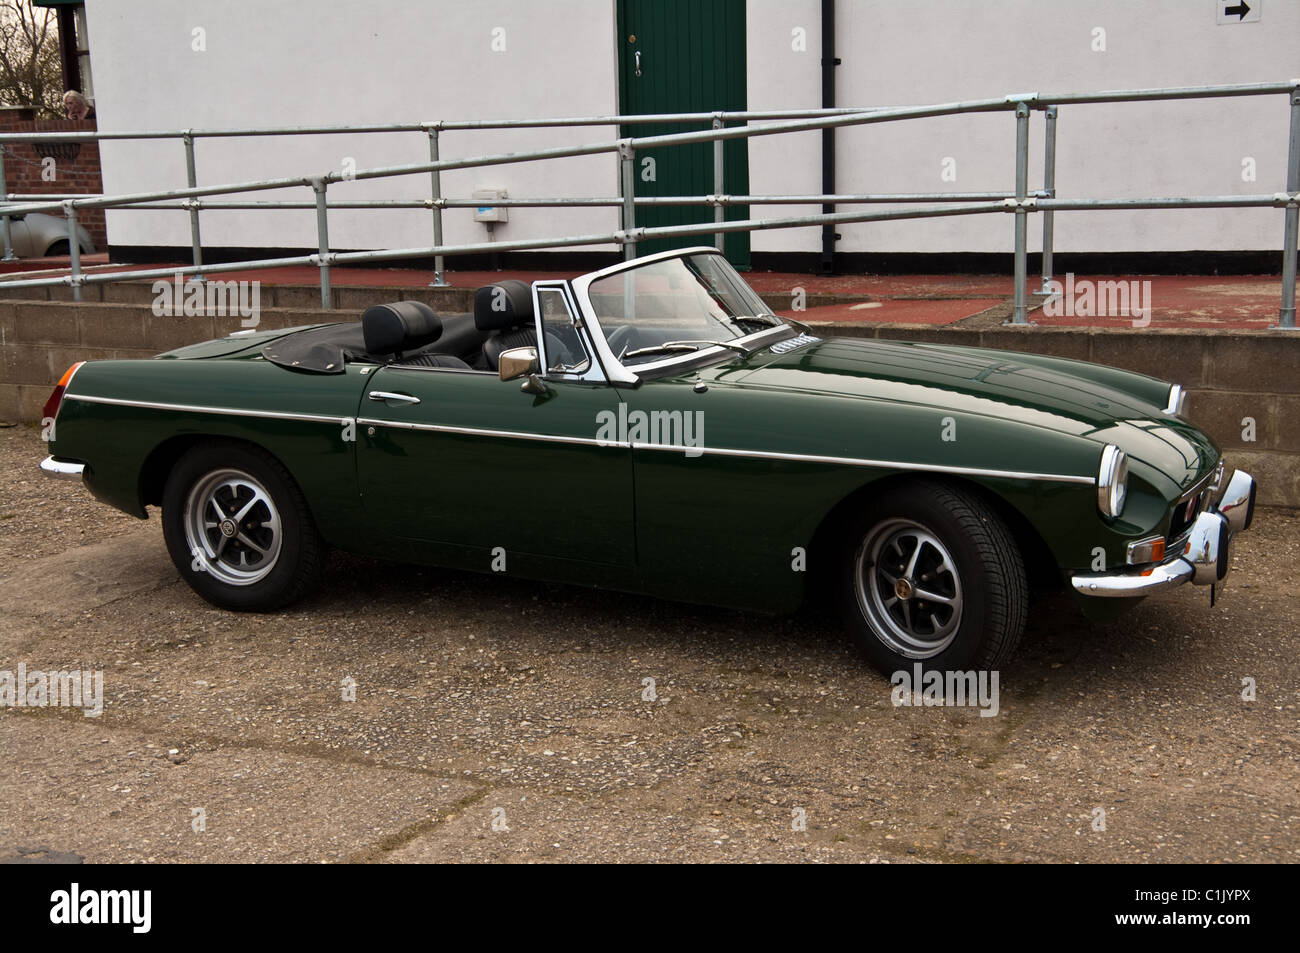 Green MGB soft top sports car, with top down - Stock Image